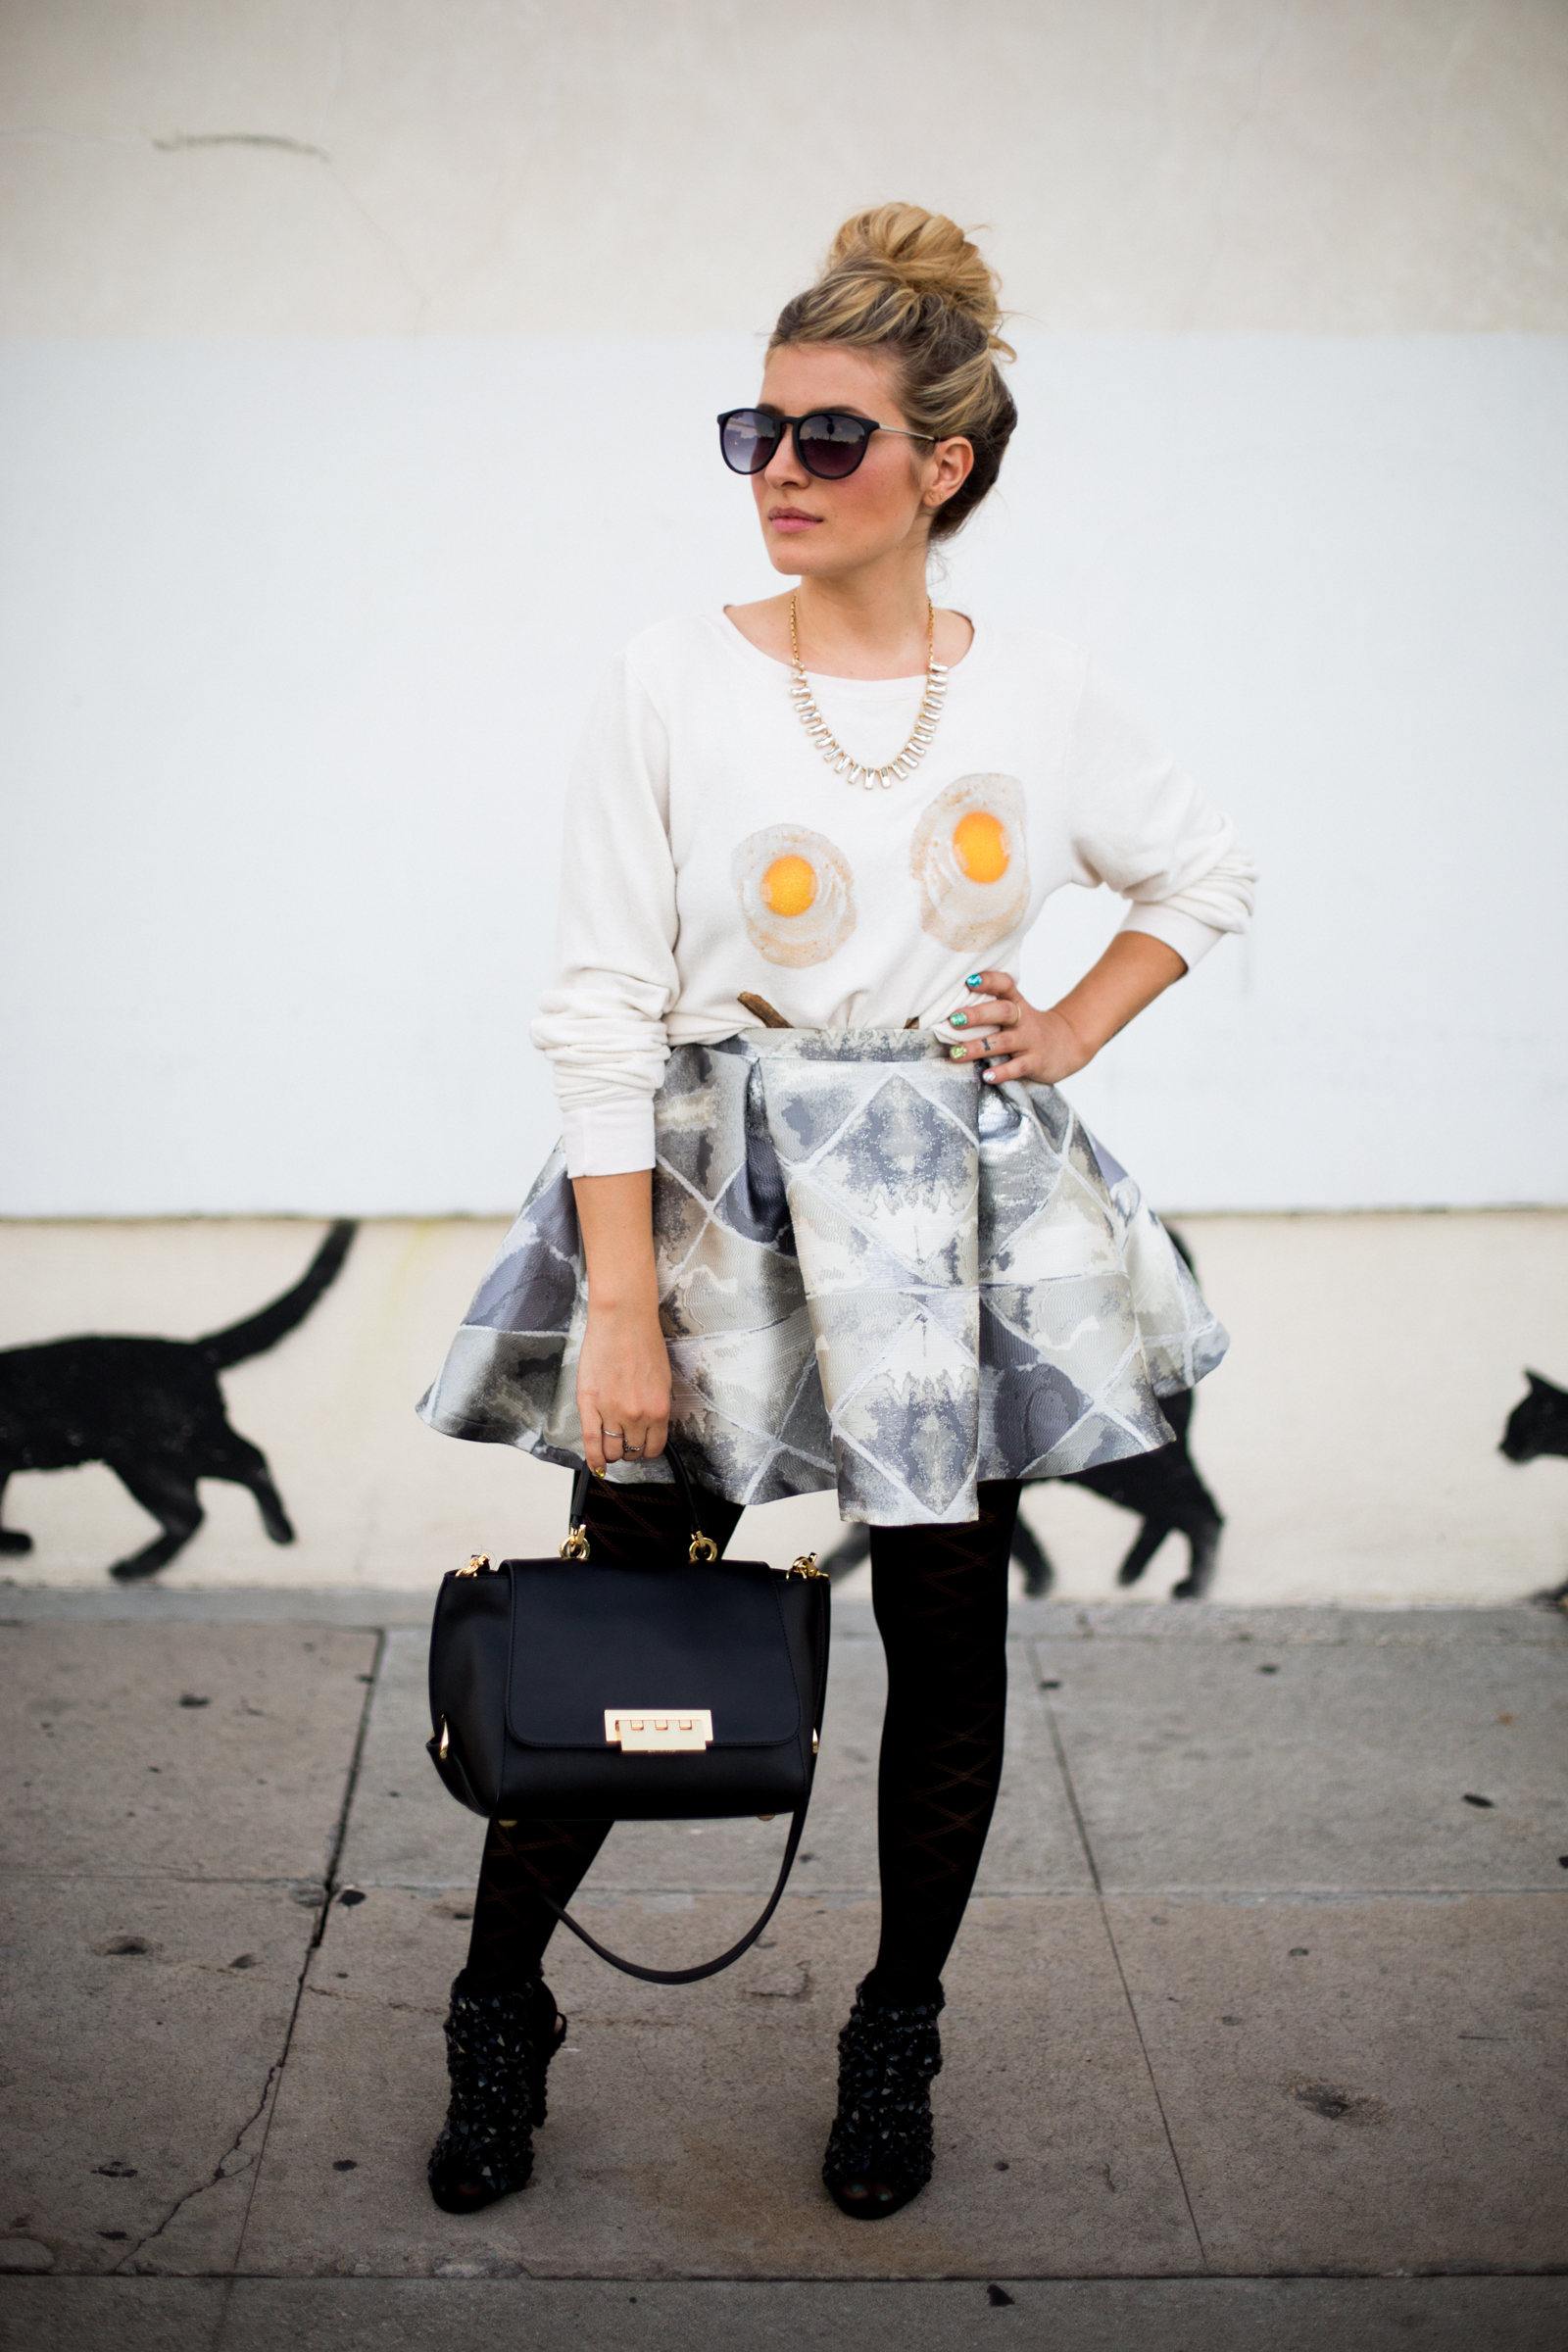 MrKate_FriedeggBradshaw_OOTD_Blog (7 of 33)